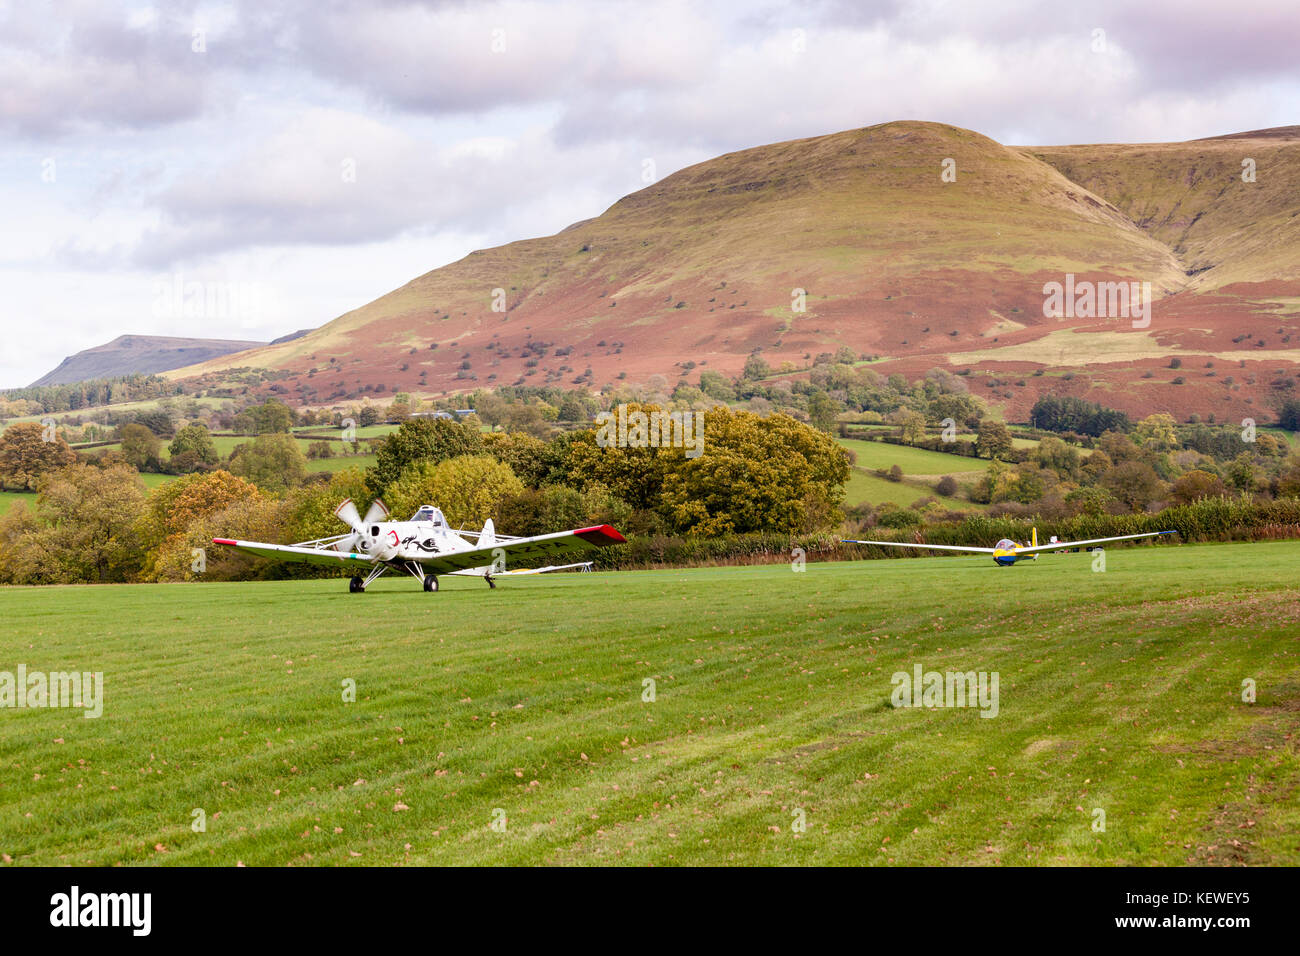 A glider being towed up by tug at the Black Mountains Gliding Club on the Brecon Beacons near Talgarth, Powys, Wales - Stock Image